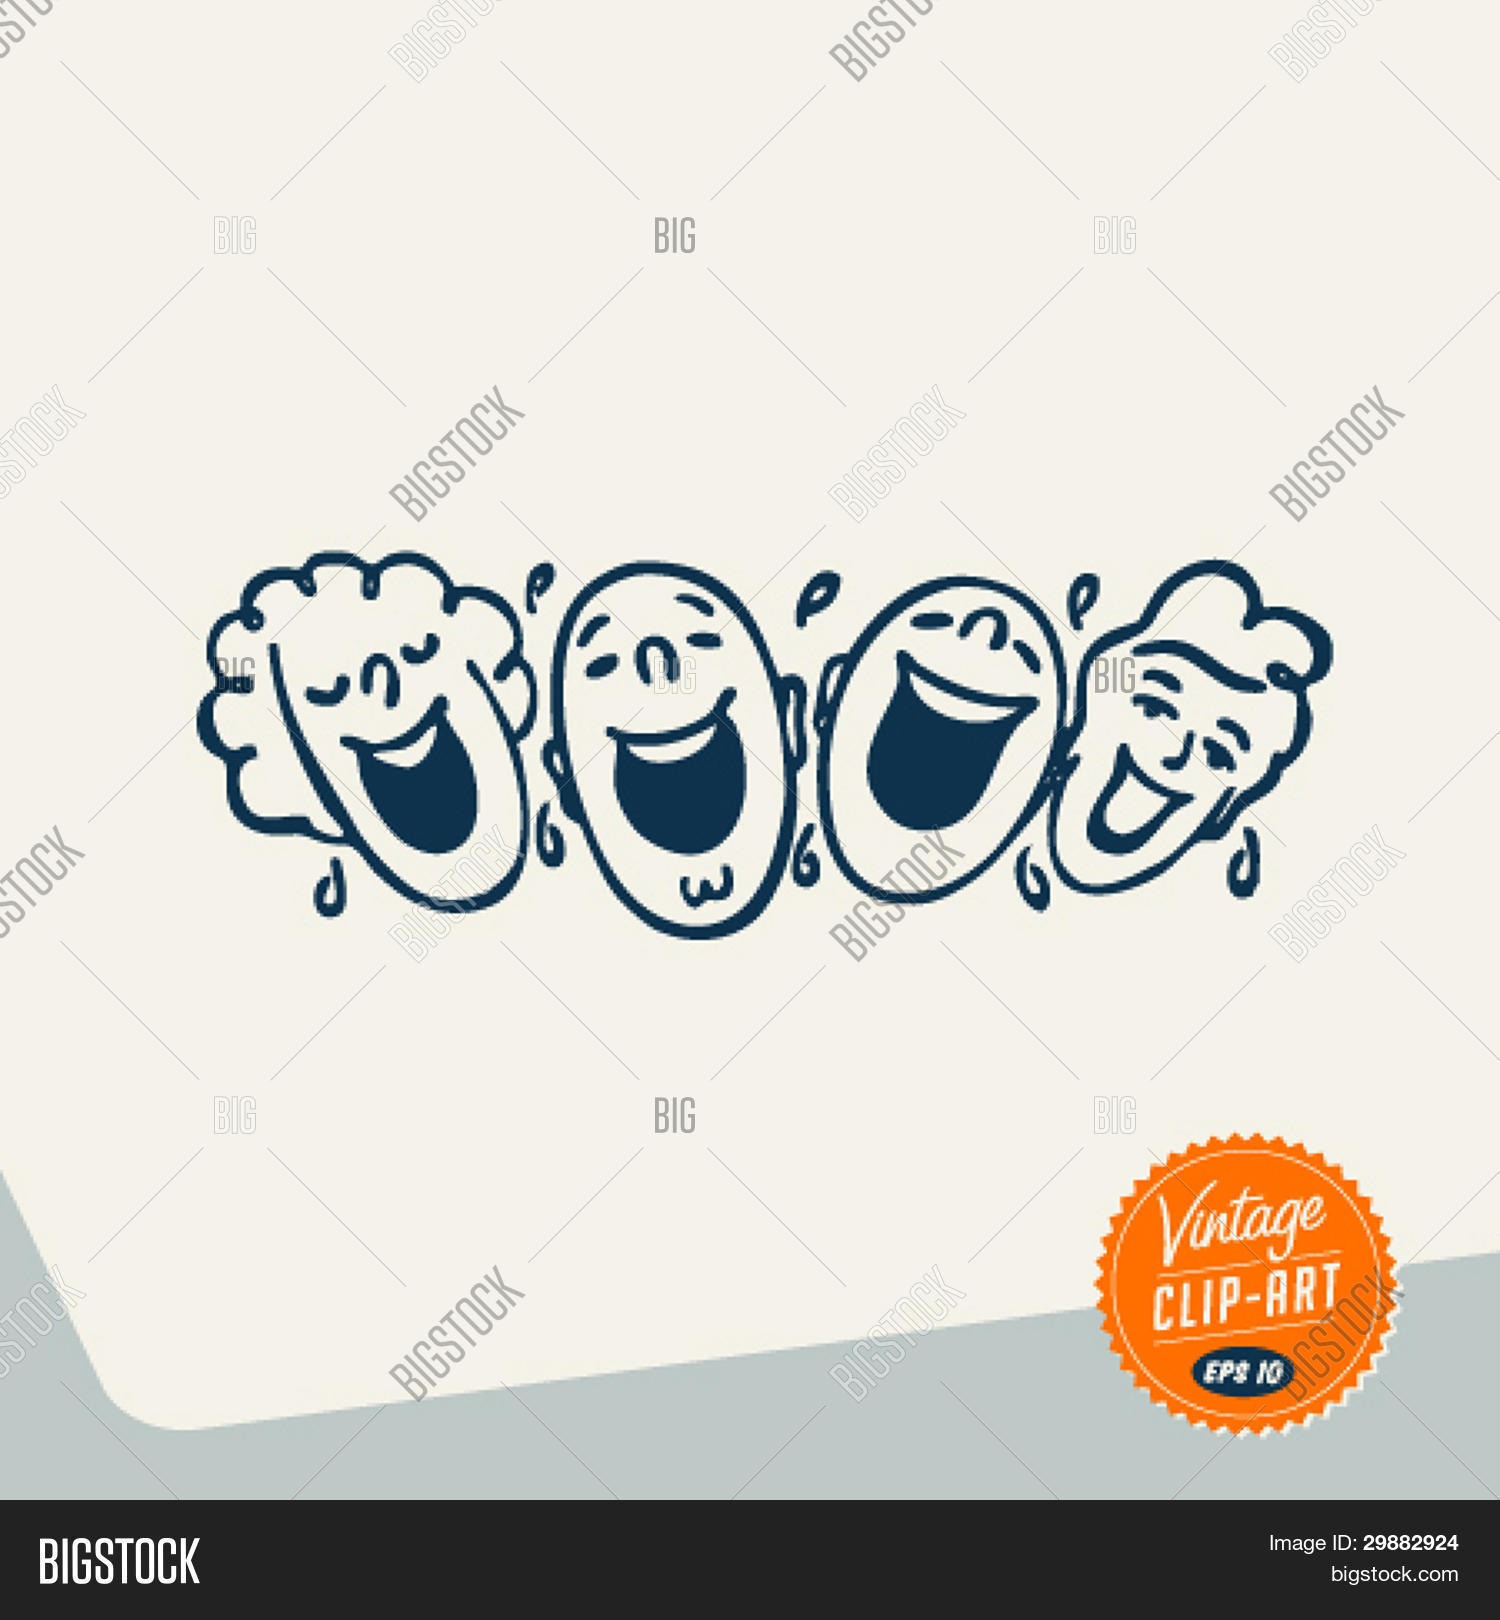 People laughing clipart clip art library download Vintage Clip Art - People laughing out loud - Vector EPS10. Stock ... clip art library download